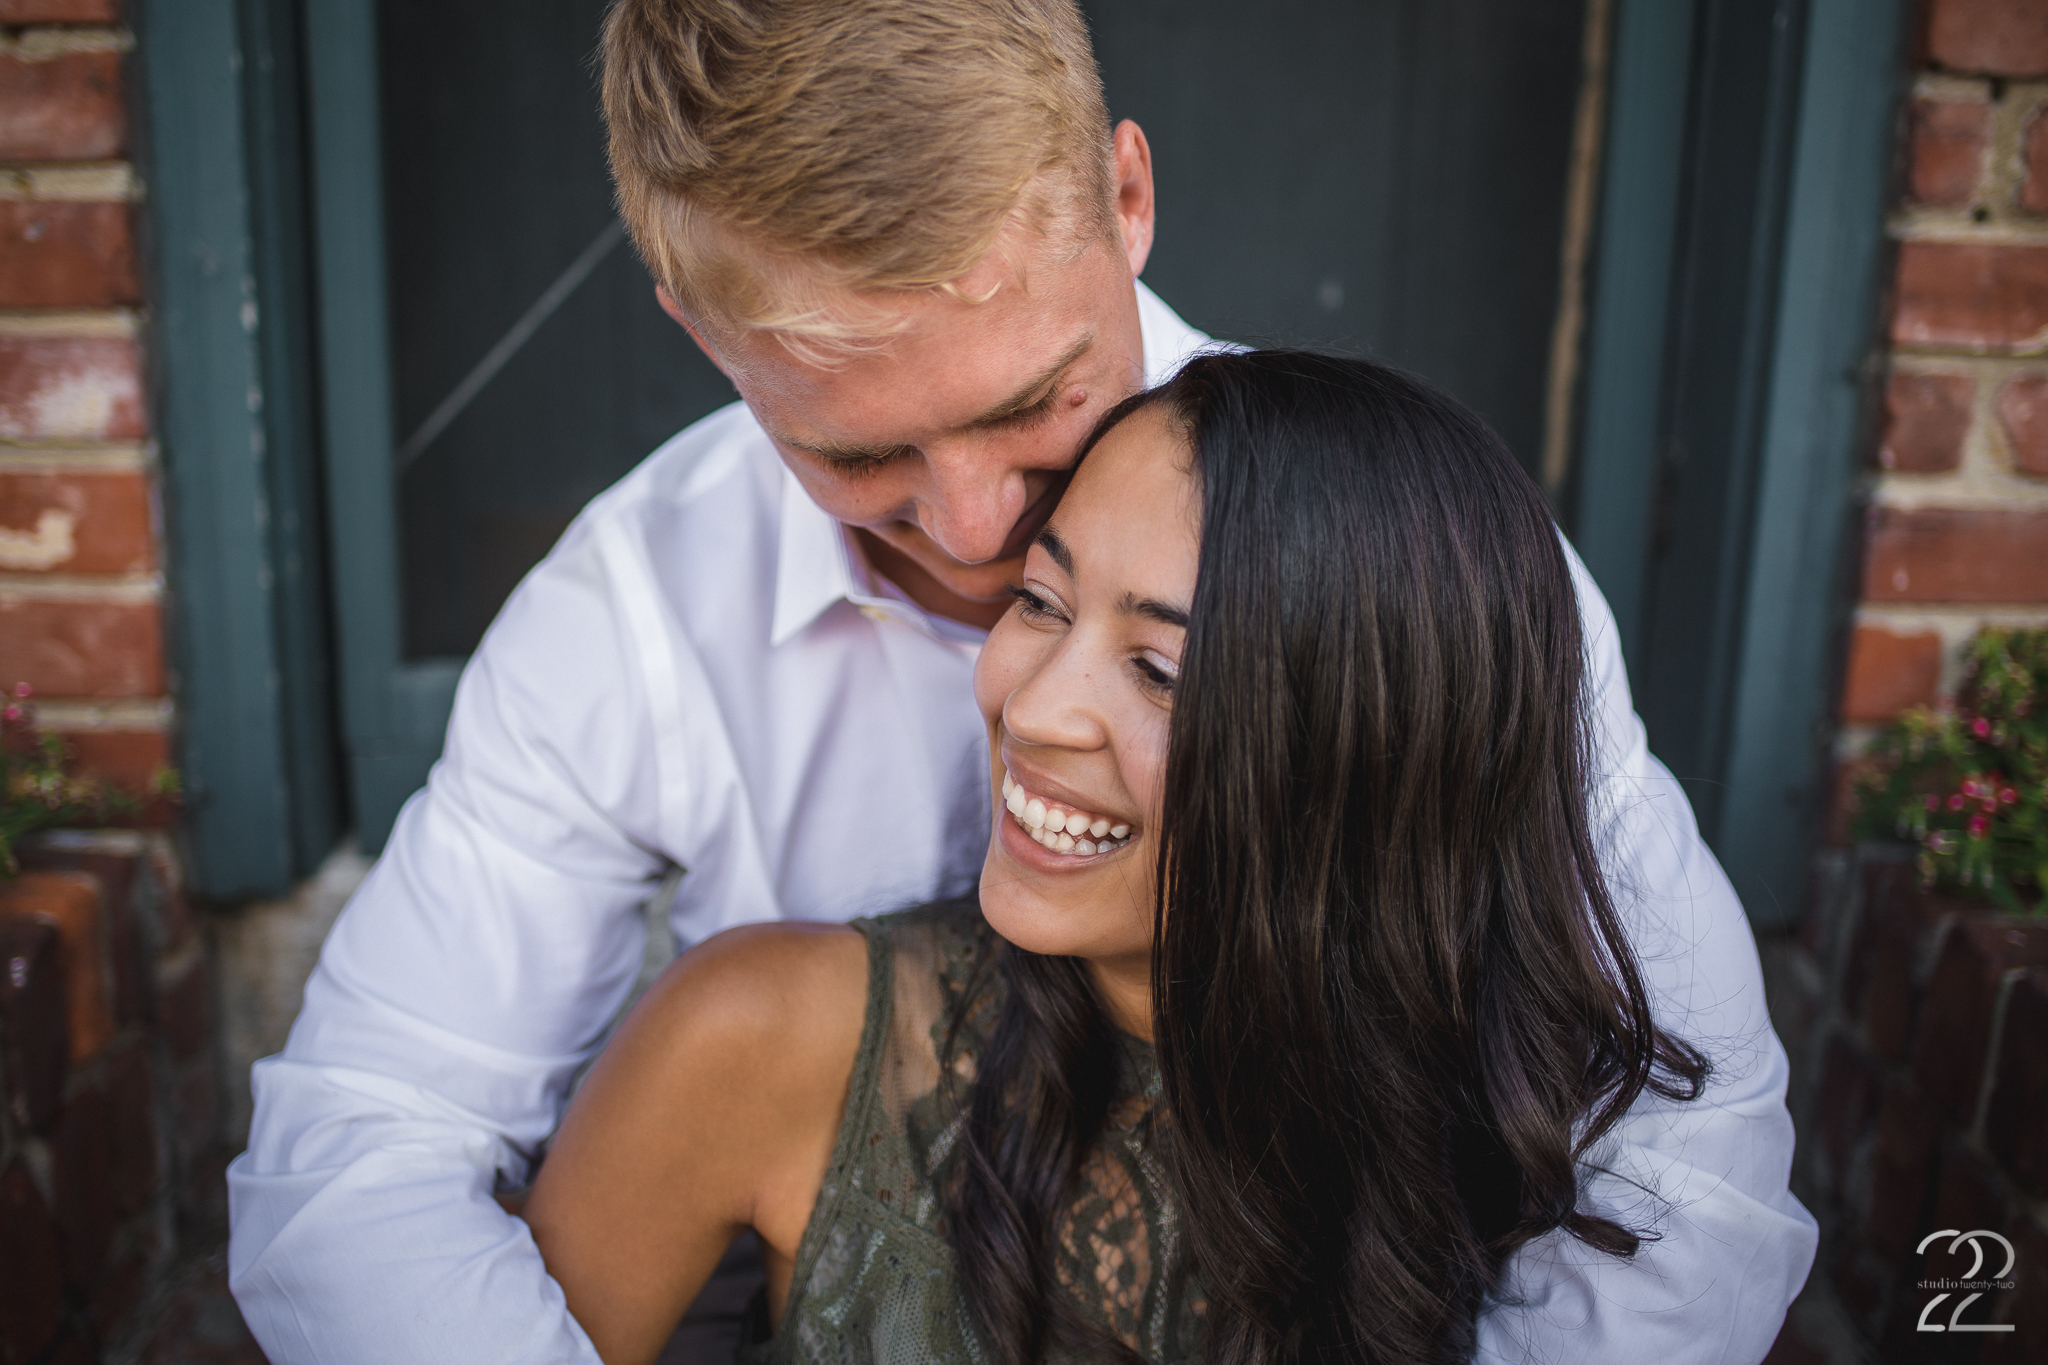 Up close photo of a man wrapping his arms around a woman from behind while sitting on the stairs, in Lebanon, Ohio by Dayton Wedding Photographer Studio 22 Photography